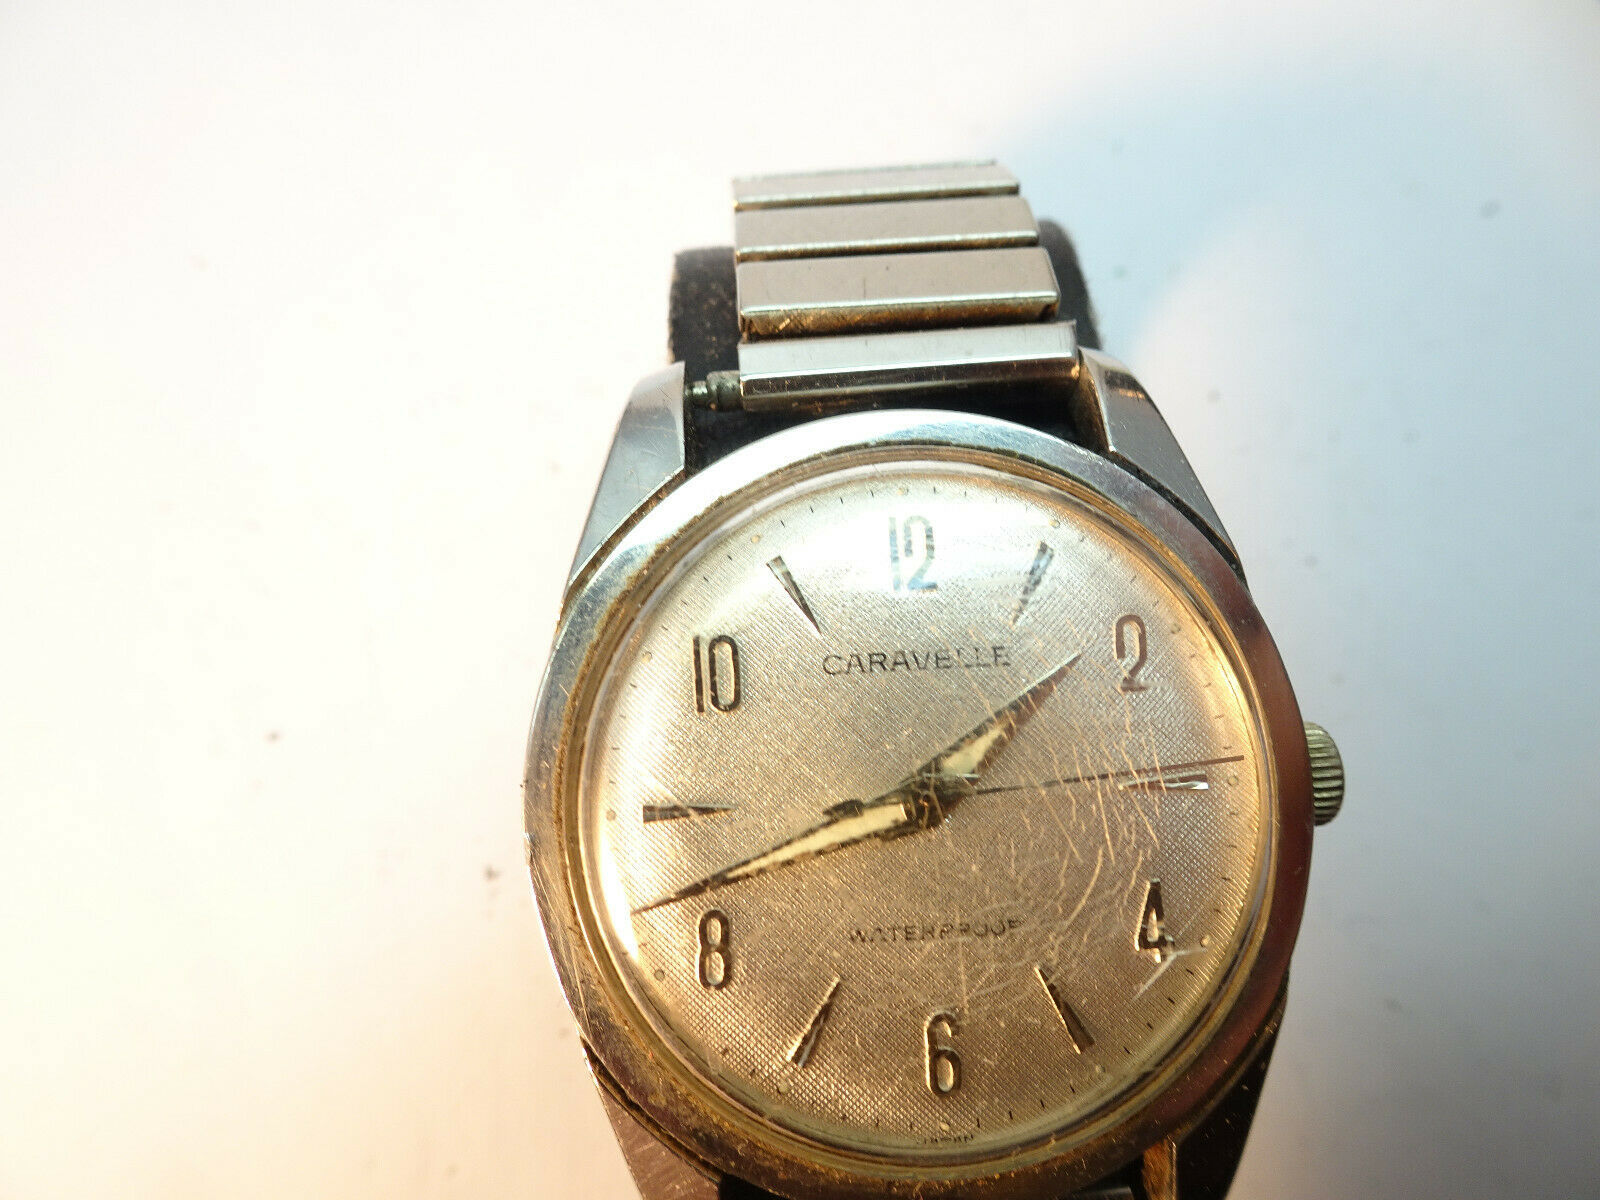 Primary image for 1960'S CARAVELLE BULOVA WATERPRROOF SILVER DIAL 11DP 17 JEWEL WATCH RUNS